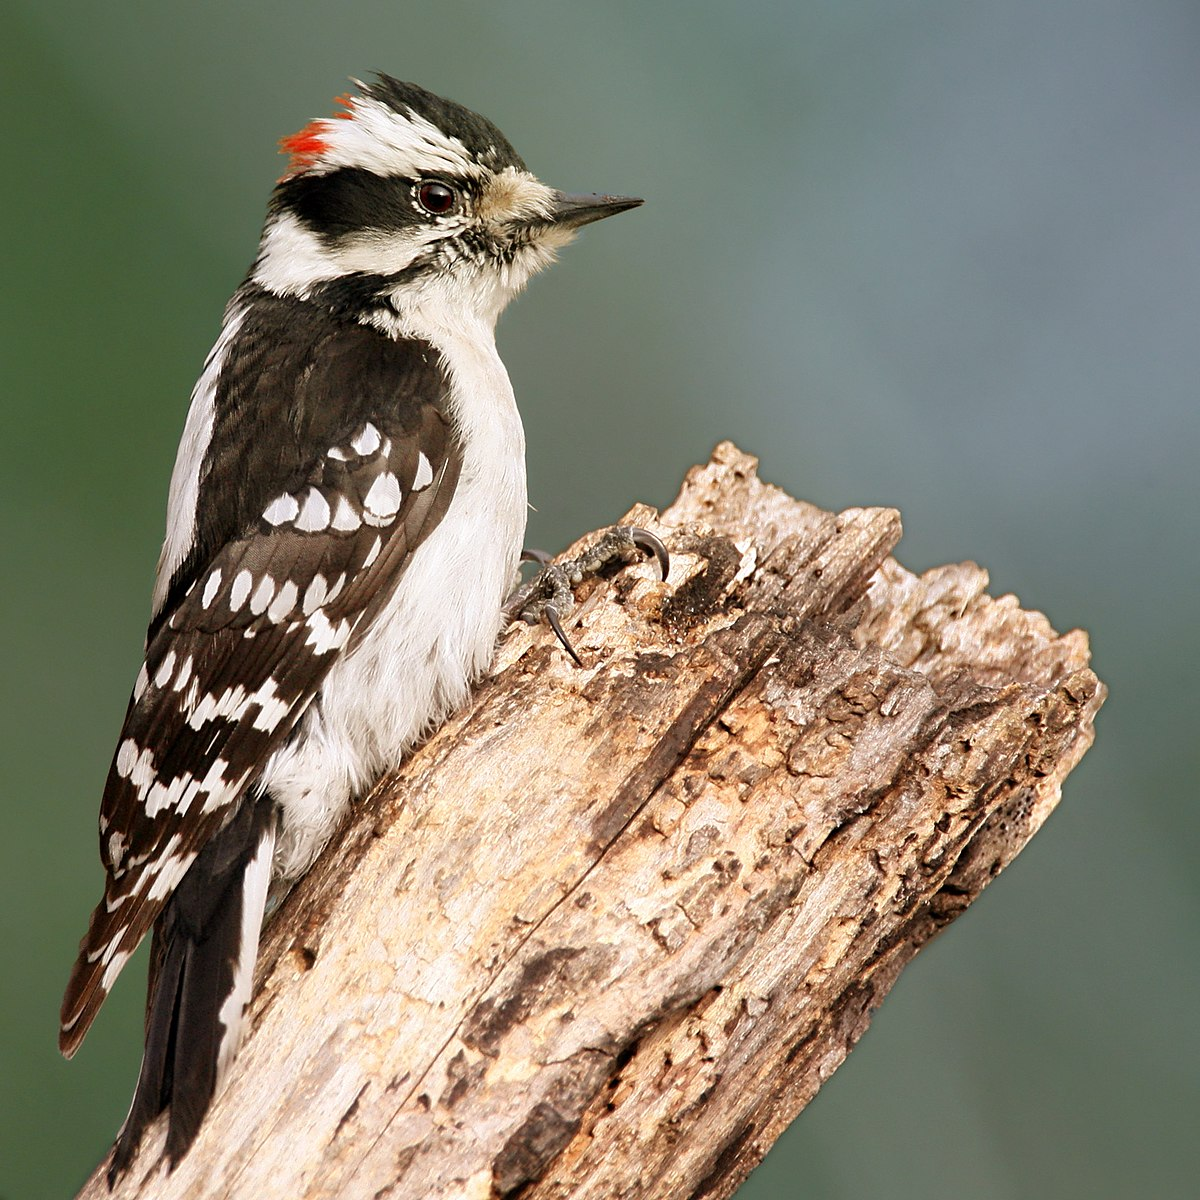 downy woodpecker bird birds name wikipedia head colorado wings male picoides pubescens feathers scientific its hairy patch tail cap wiki